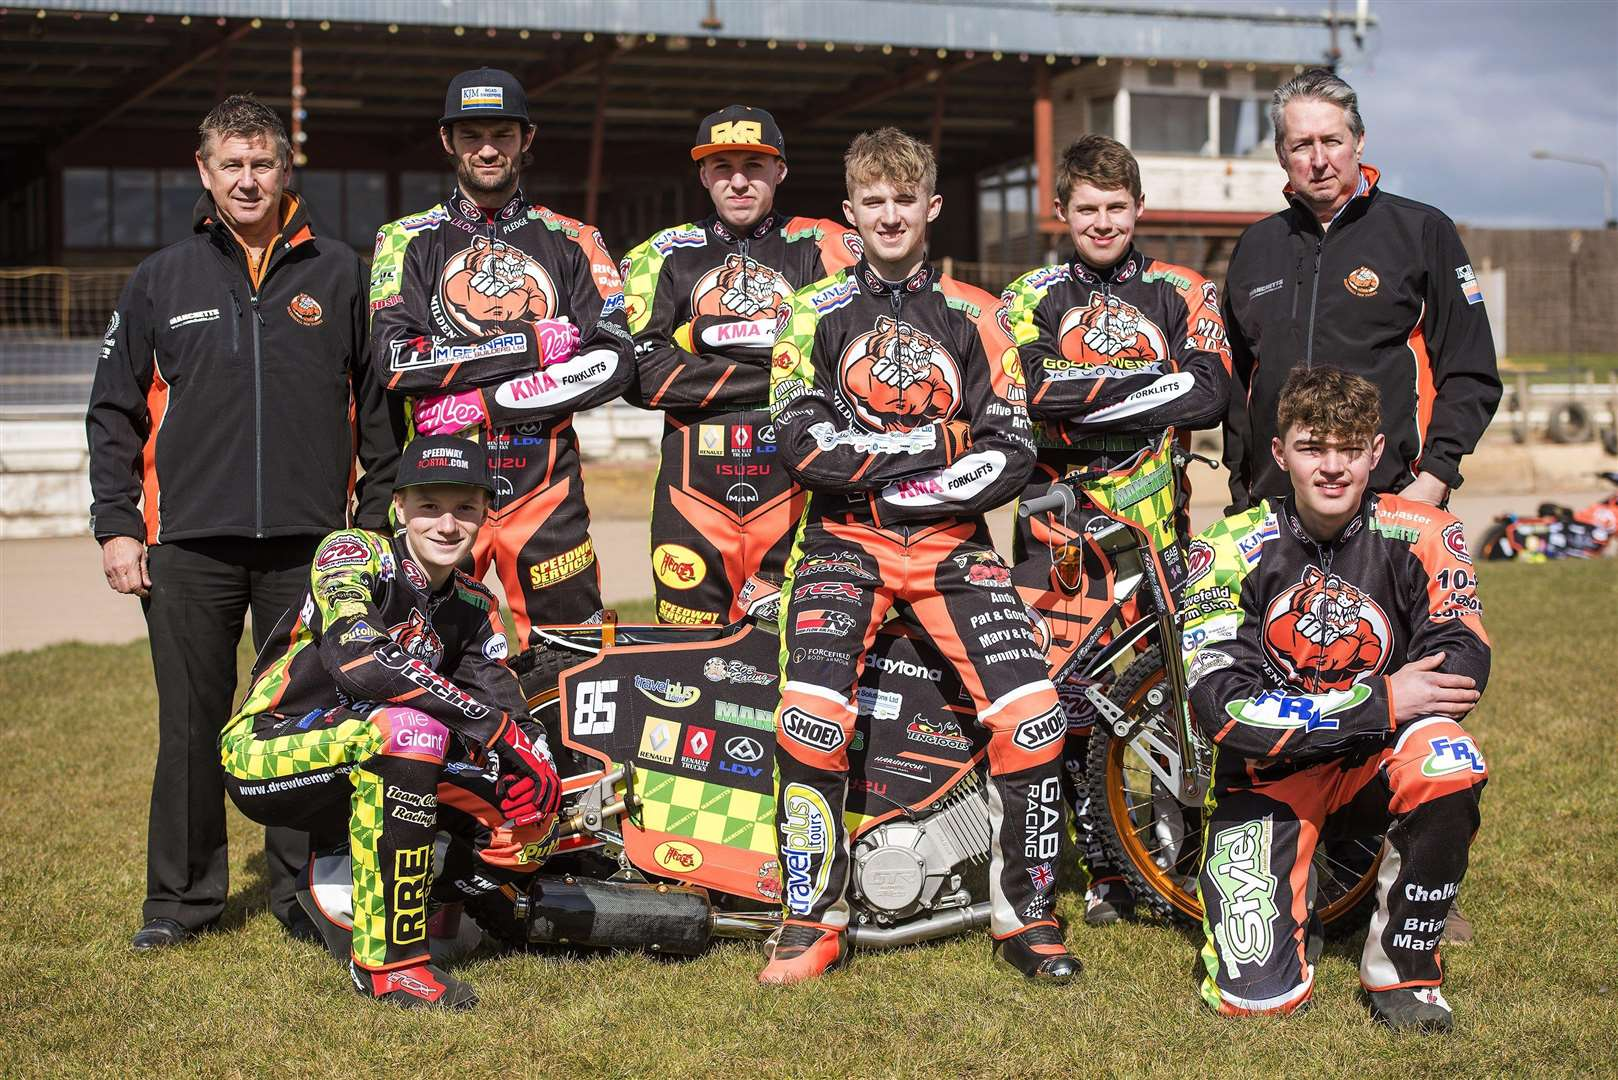 Mildenhall Fen Tigers Pre season practice day...Mildenhall Fen Tigers 2018 - Back row Left to right: Kevin Jolly (promoter) Danny Ayres, Ryan Kingsley, Jordan Jenkins, Josh Bailey, Phil Kirk (team manager) Front row left to right: Drew Kemp, Sam Bebee, ..Picture Mark Westley. (2967810)